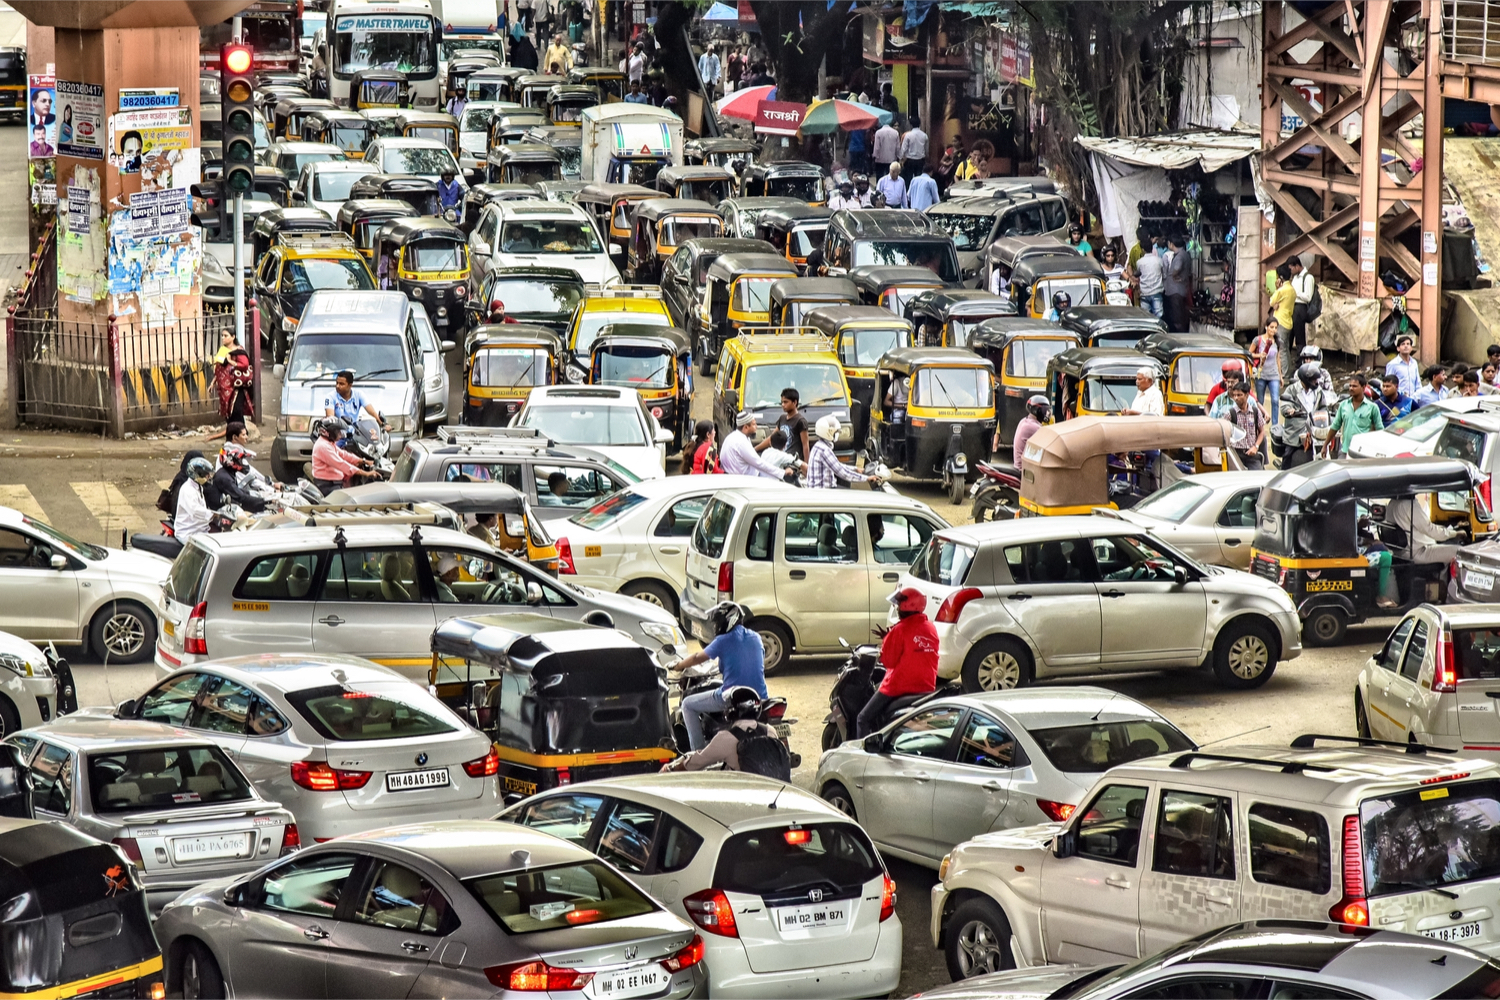 Mobility-as-a-Service (MaaS) business is booming in India